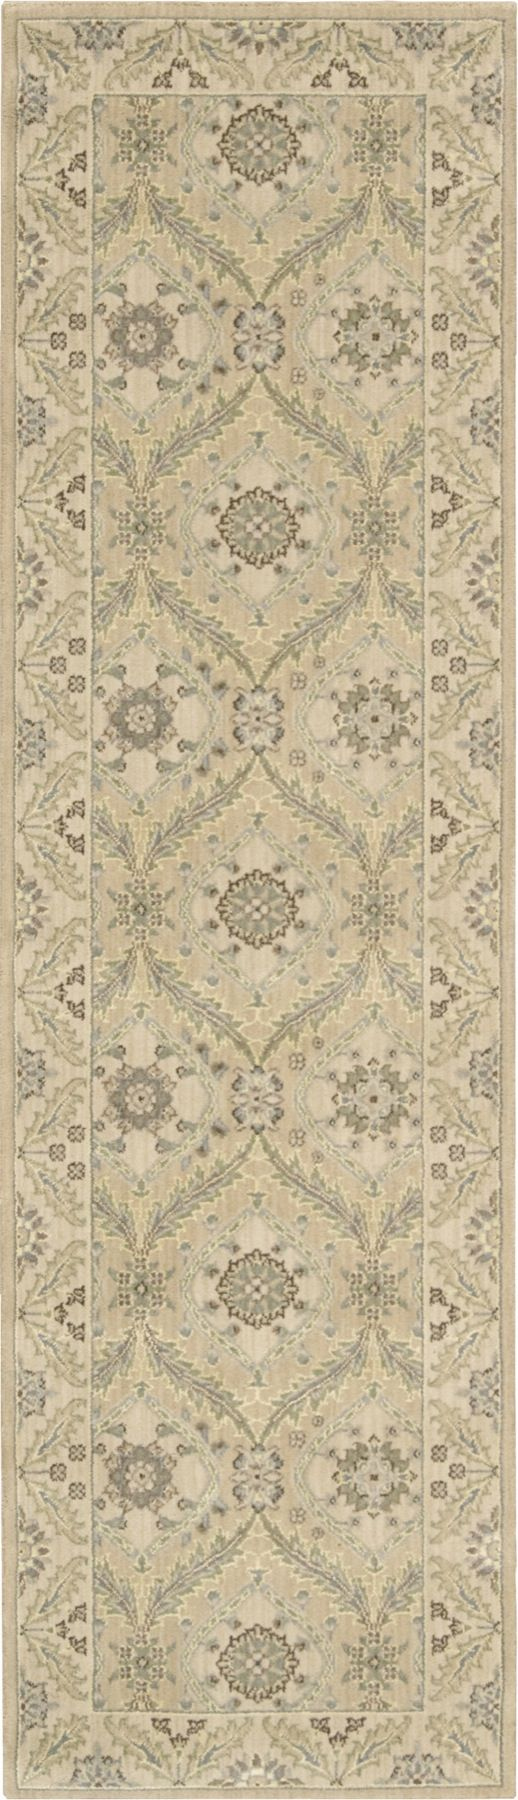 nourison persian empire traditional area rug collection